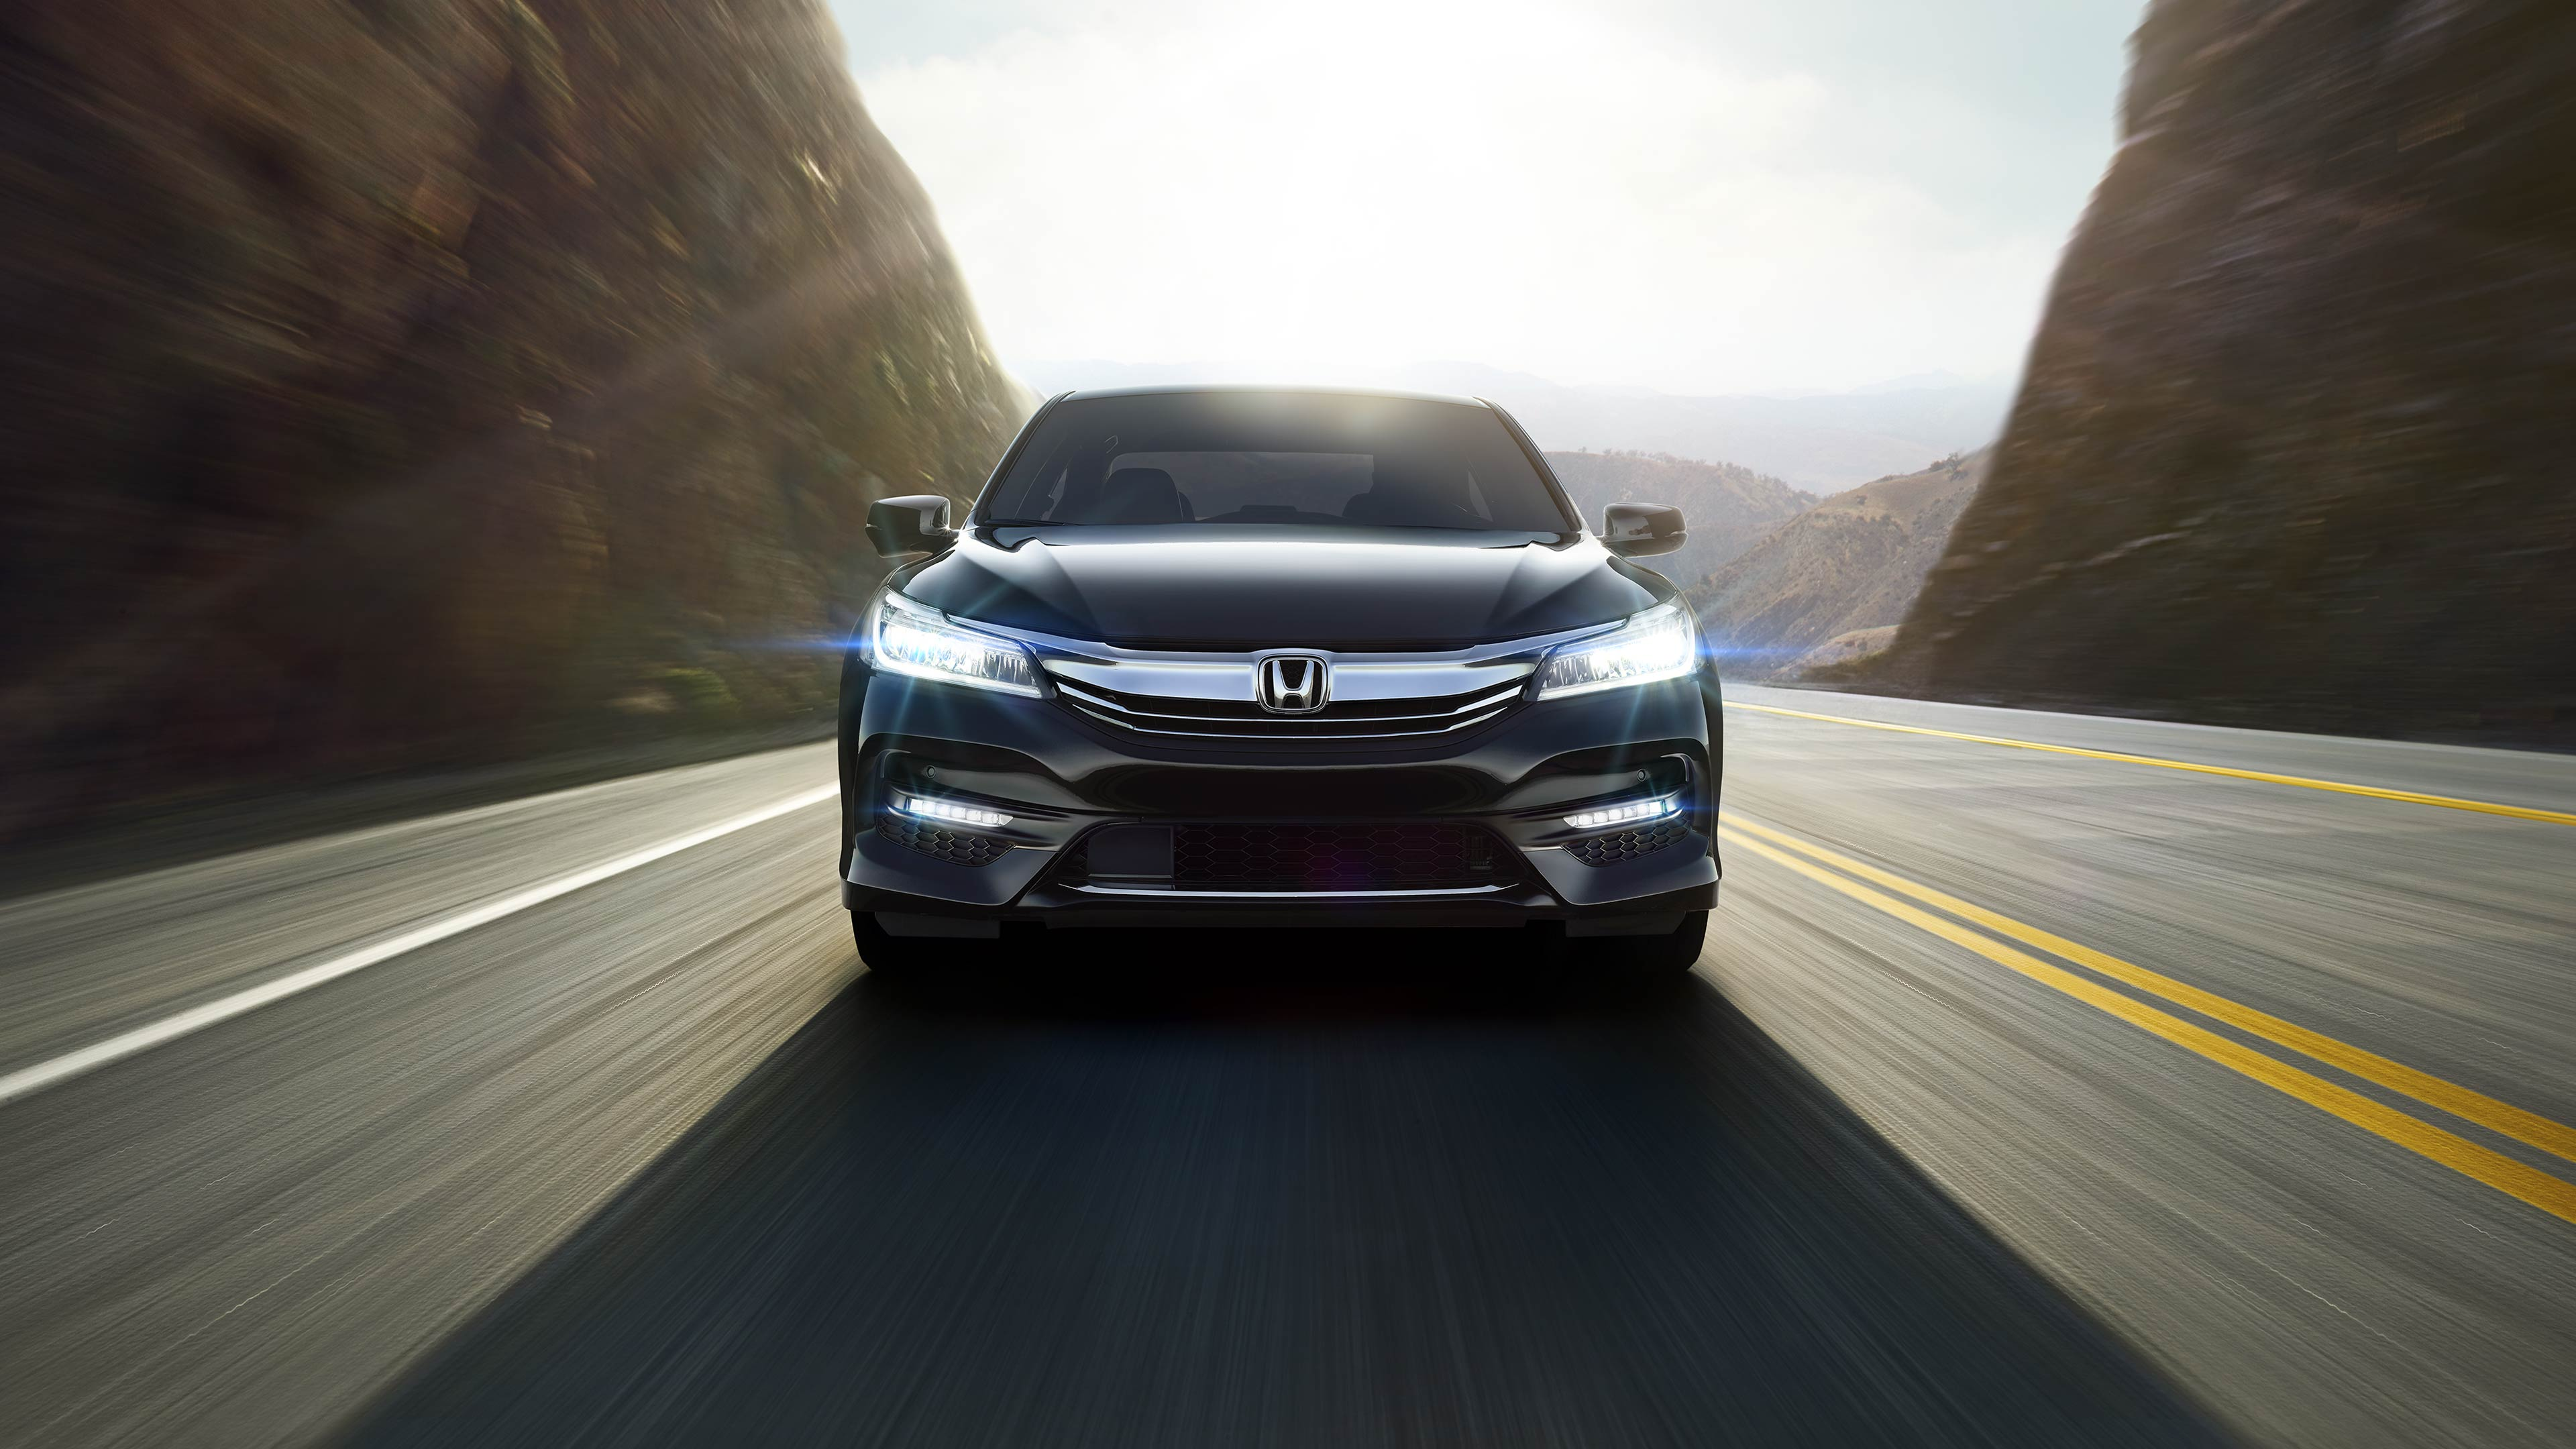 auto song worthy roadshow last s a touring swan review sedan price makes honda accord